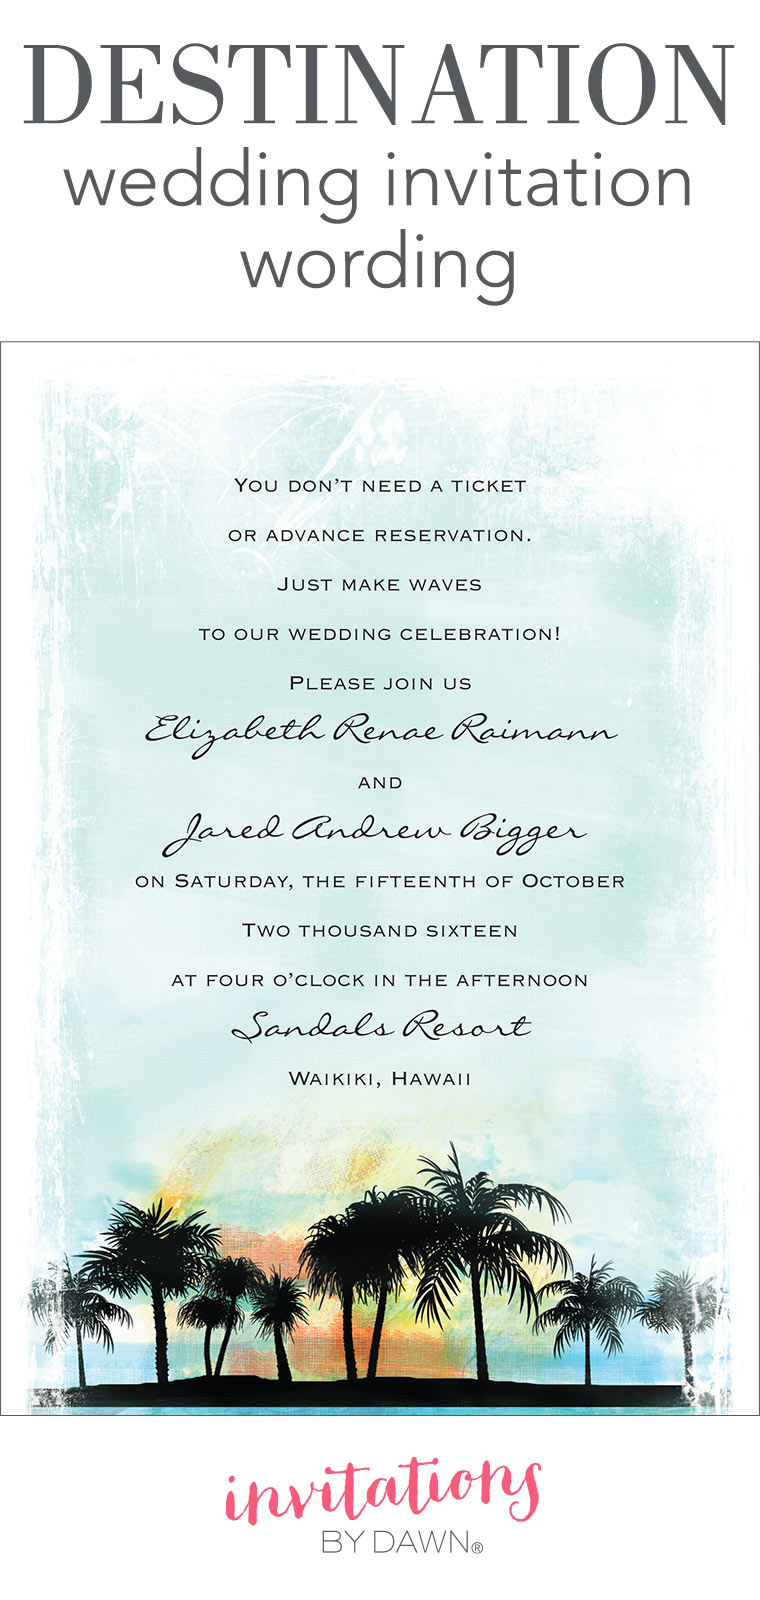 Destination wedding invitation wording invitations by dawn stopboris